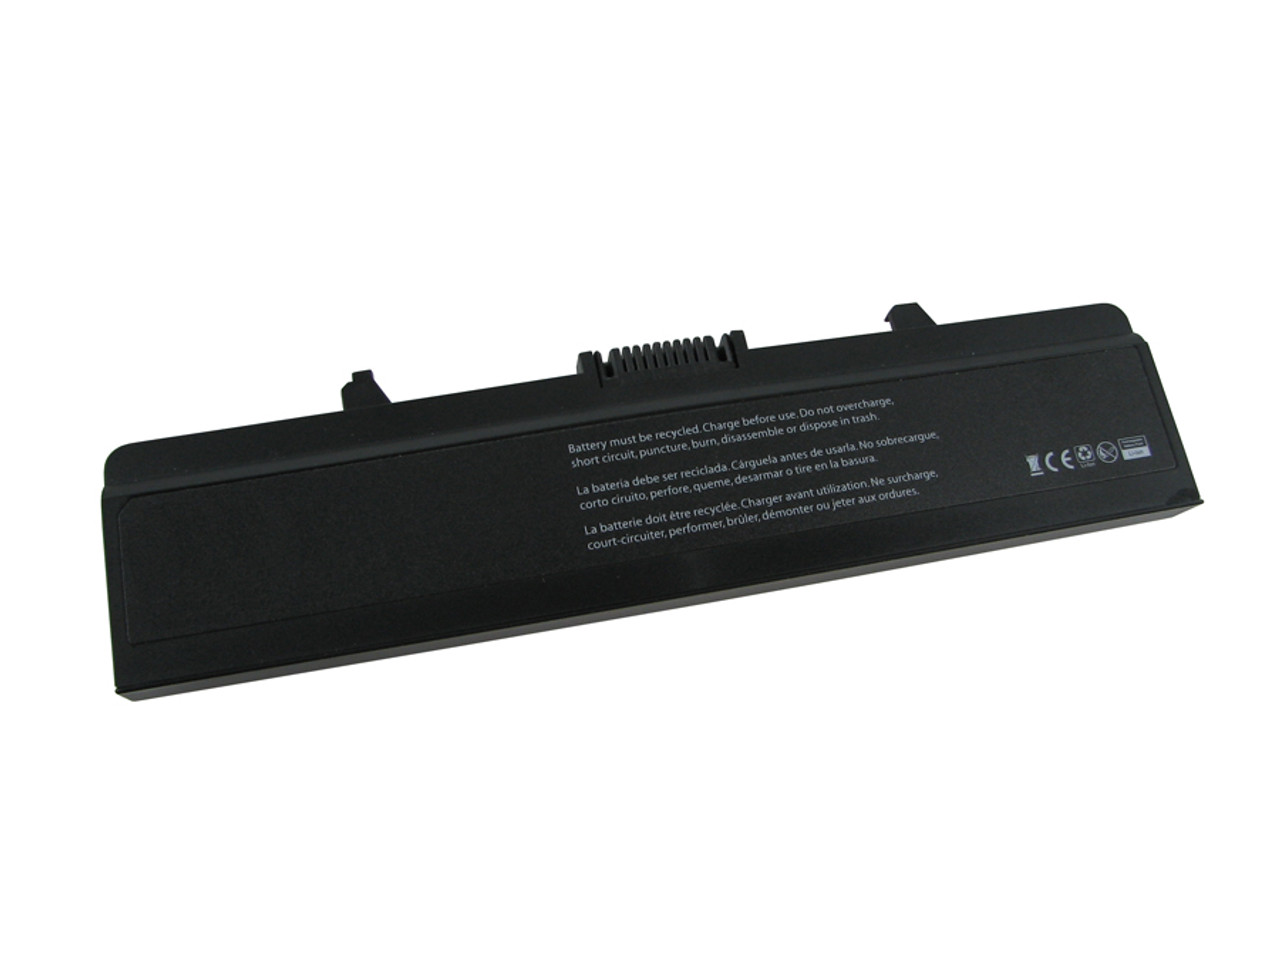 Dell Inspiron 14 1440 17 1750 battery